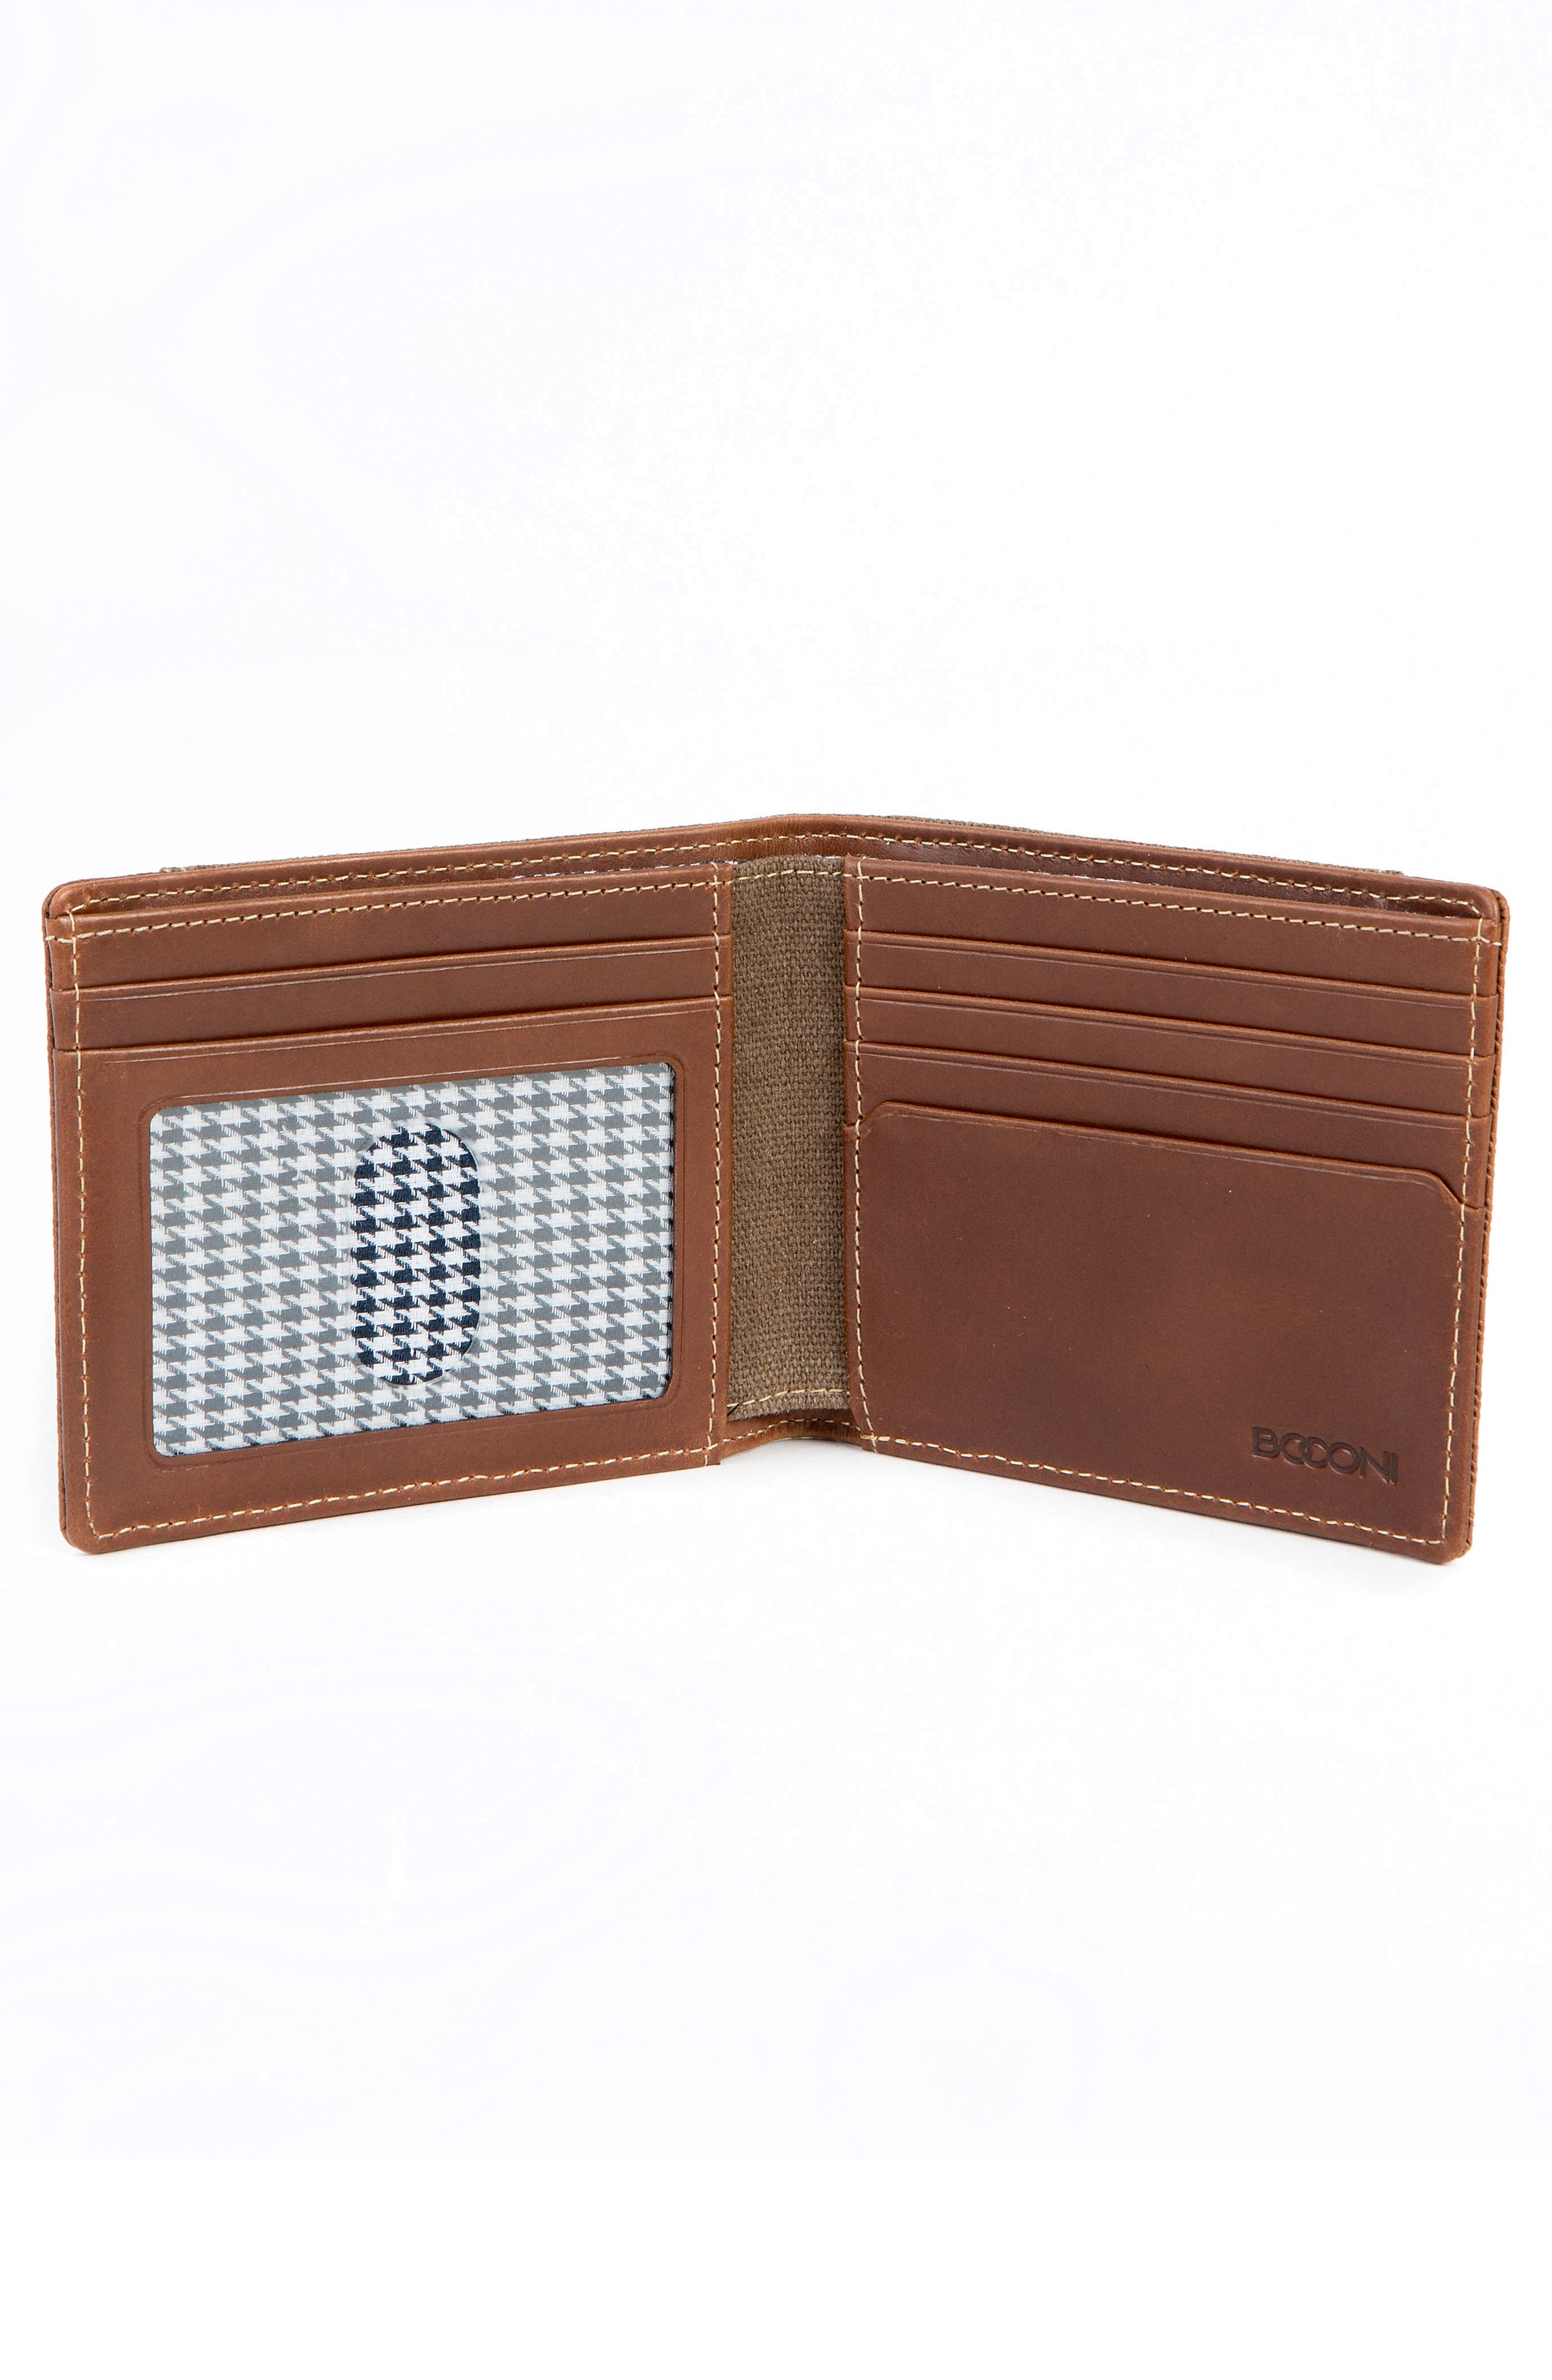 Bryant LTE Wallet,                             Alternate thumbnail 3, color,                             MAHOGANY/ HEATHER